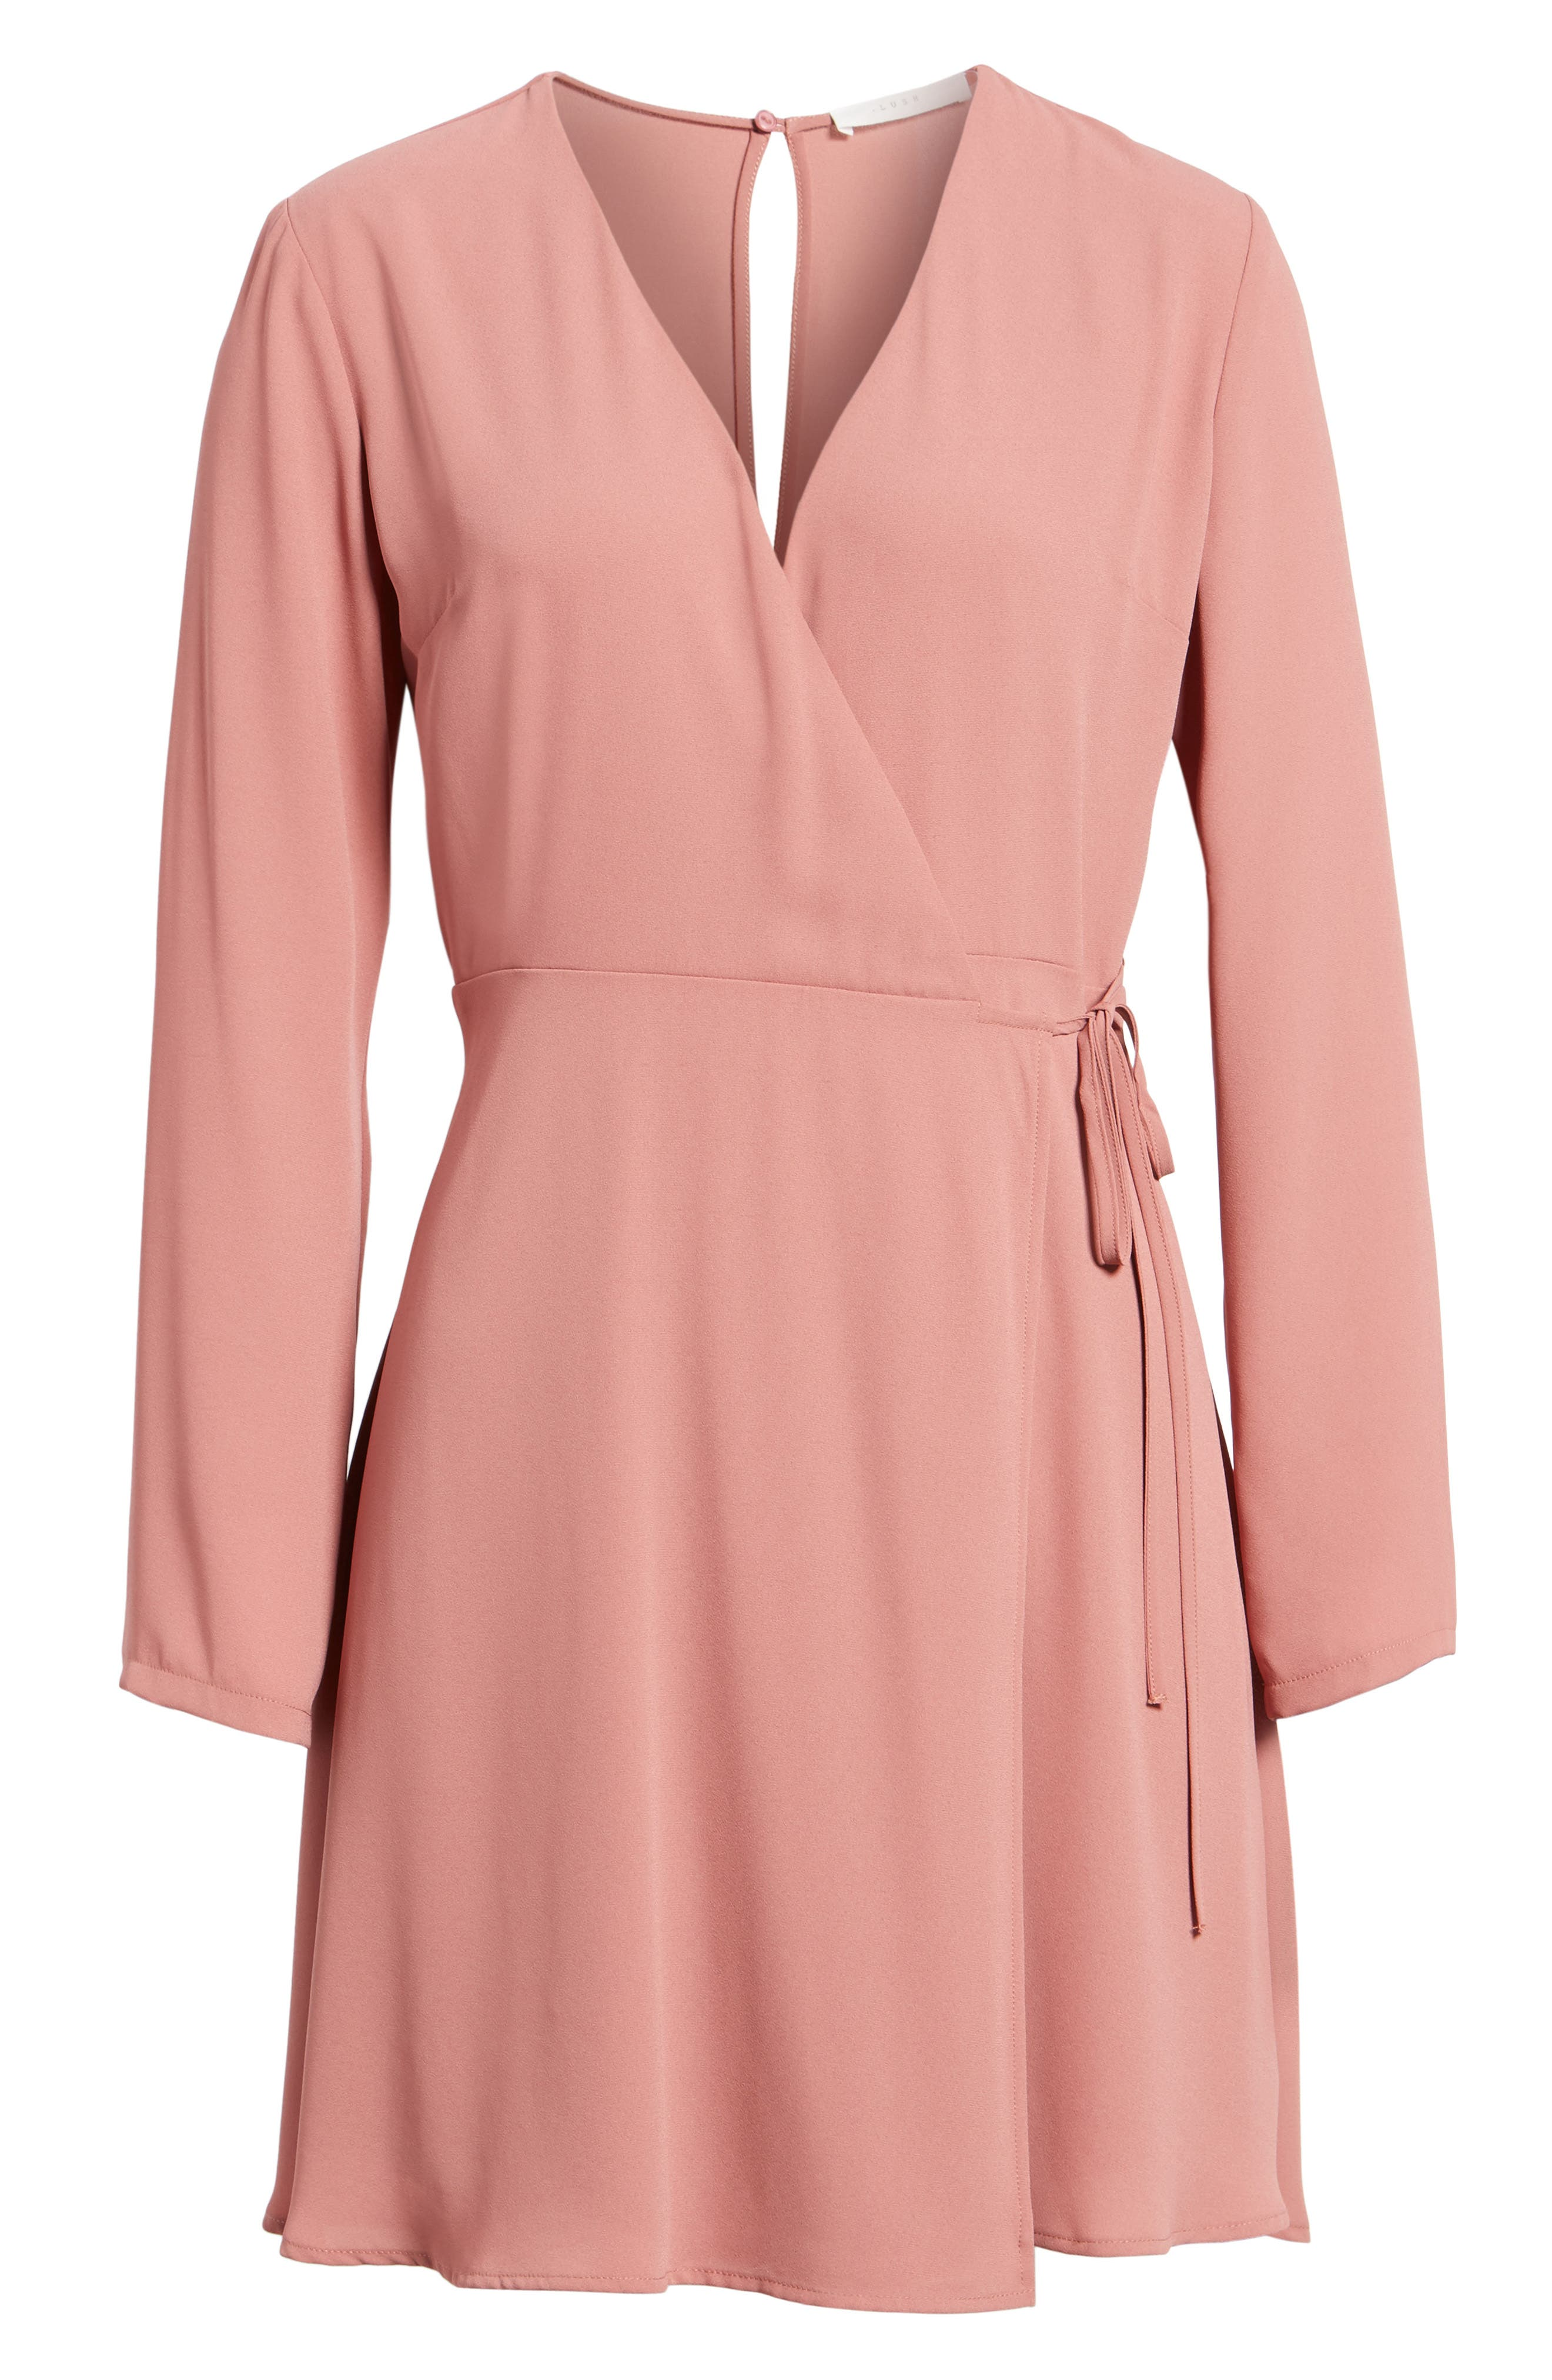 Elly Wrap Dress,                             Alternate thumbnail 6, color,                             Withered Rose